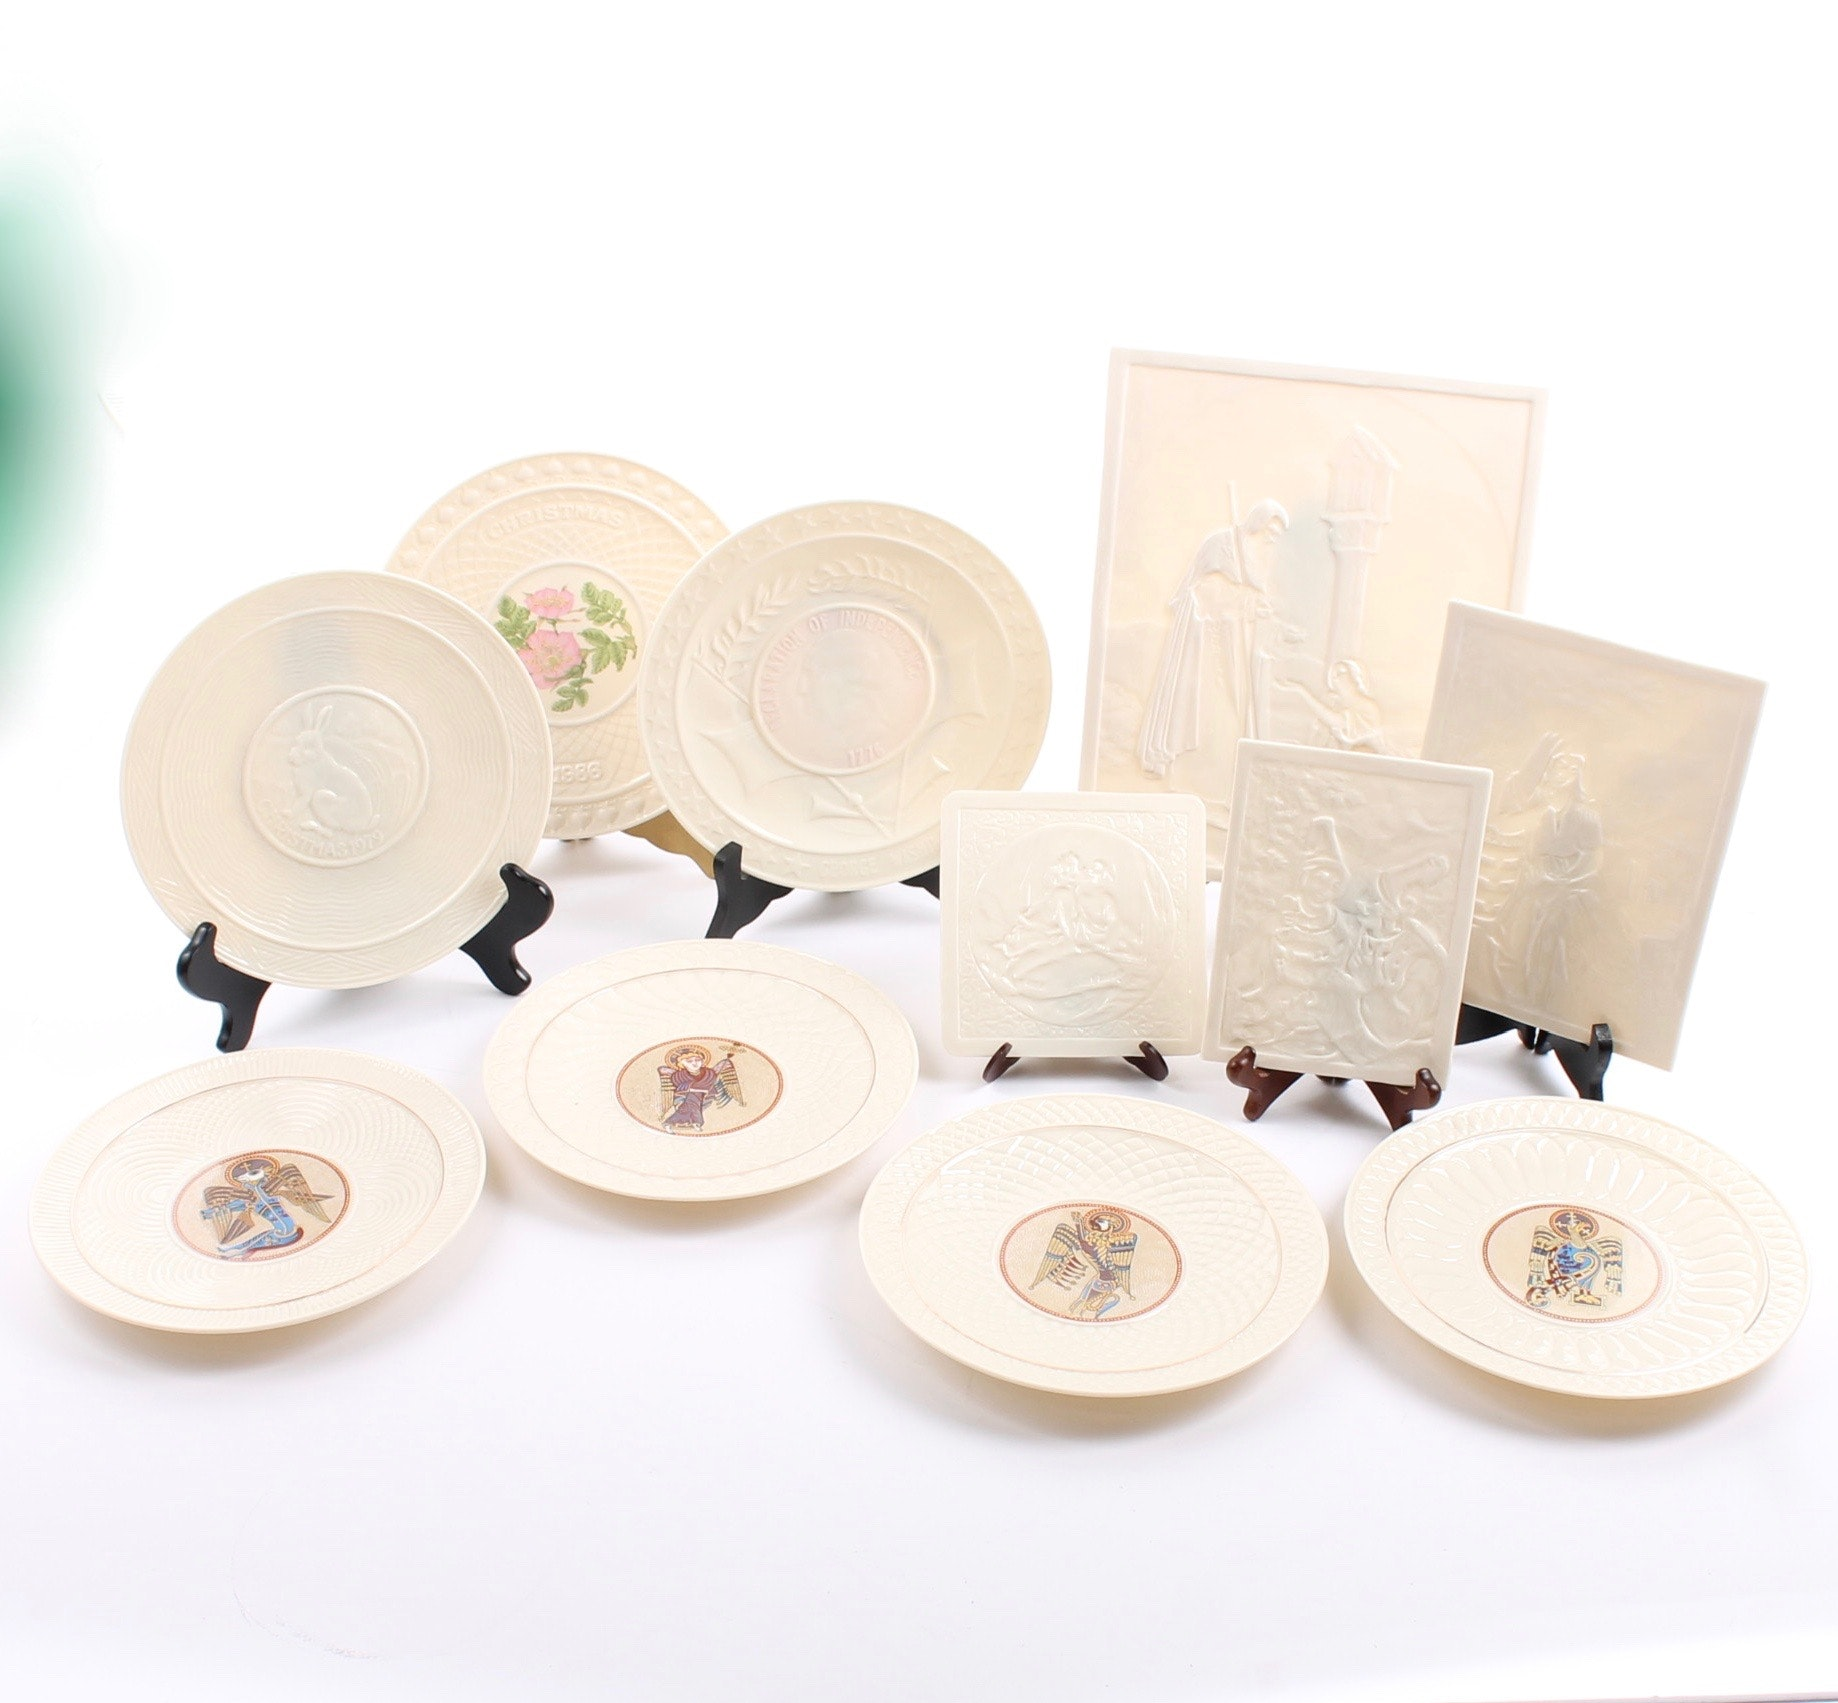 Belleek Porcelain Collector Plates and Lithoplanes